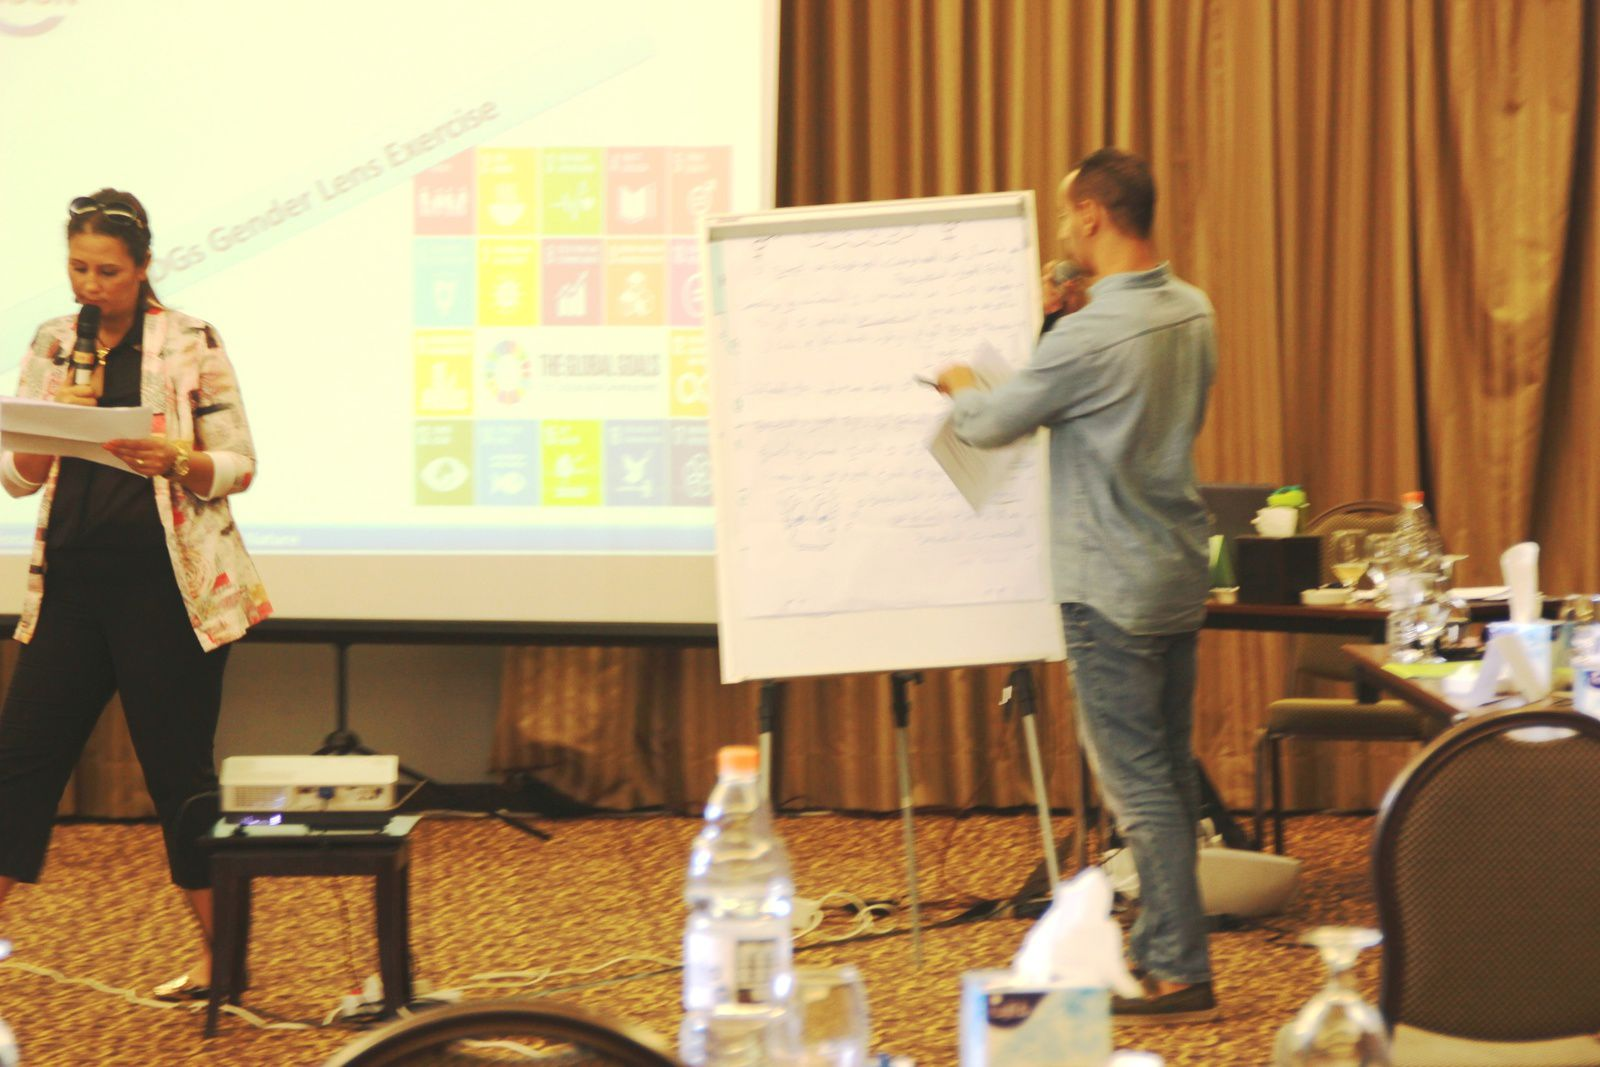 Fifth Regional Summer School in Corp Amman Hotel –Jordan. This Summer School orgenized by Heinrich Böll Foundation focused on Sustainable Development Goals (SDGs) and their approach to achieve gender- just sustainable development.